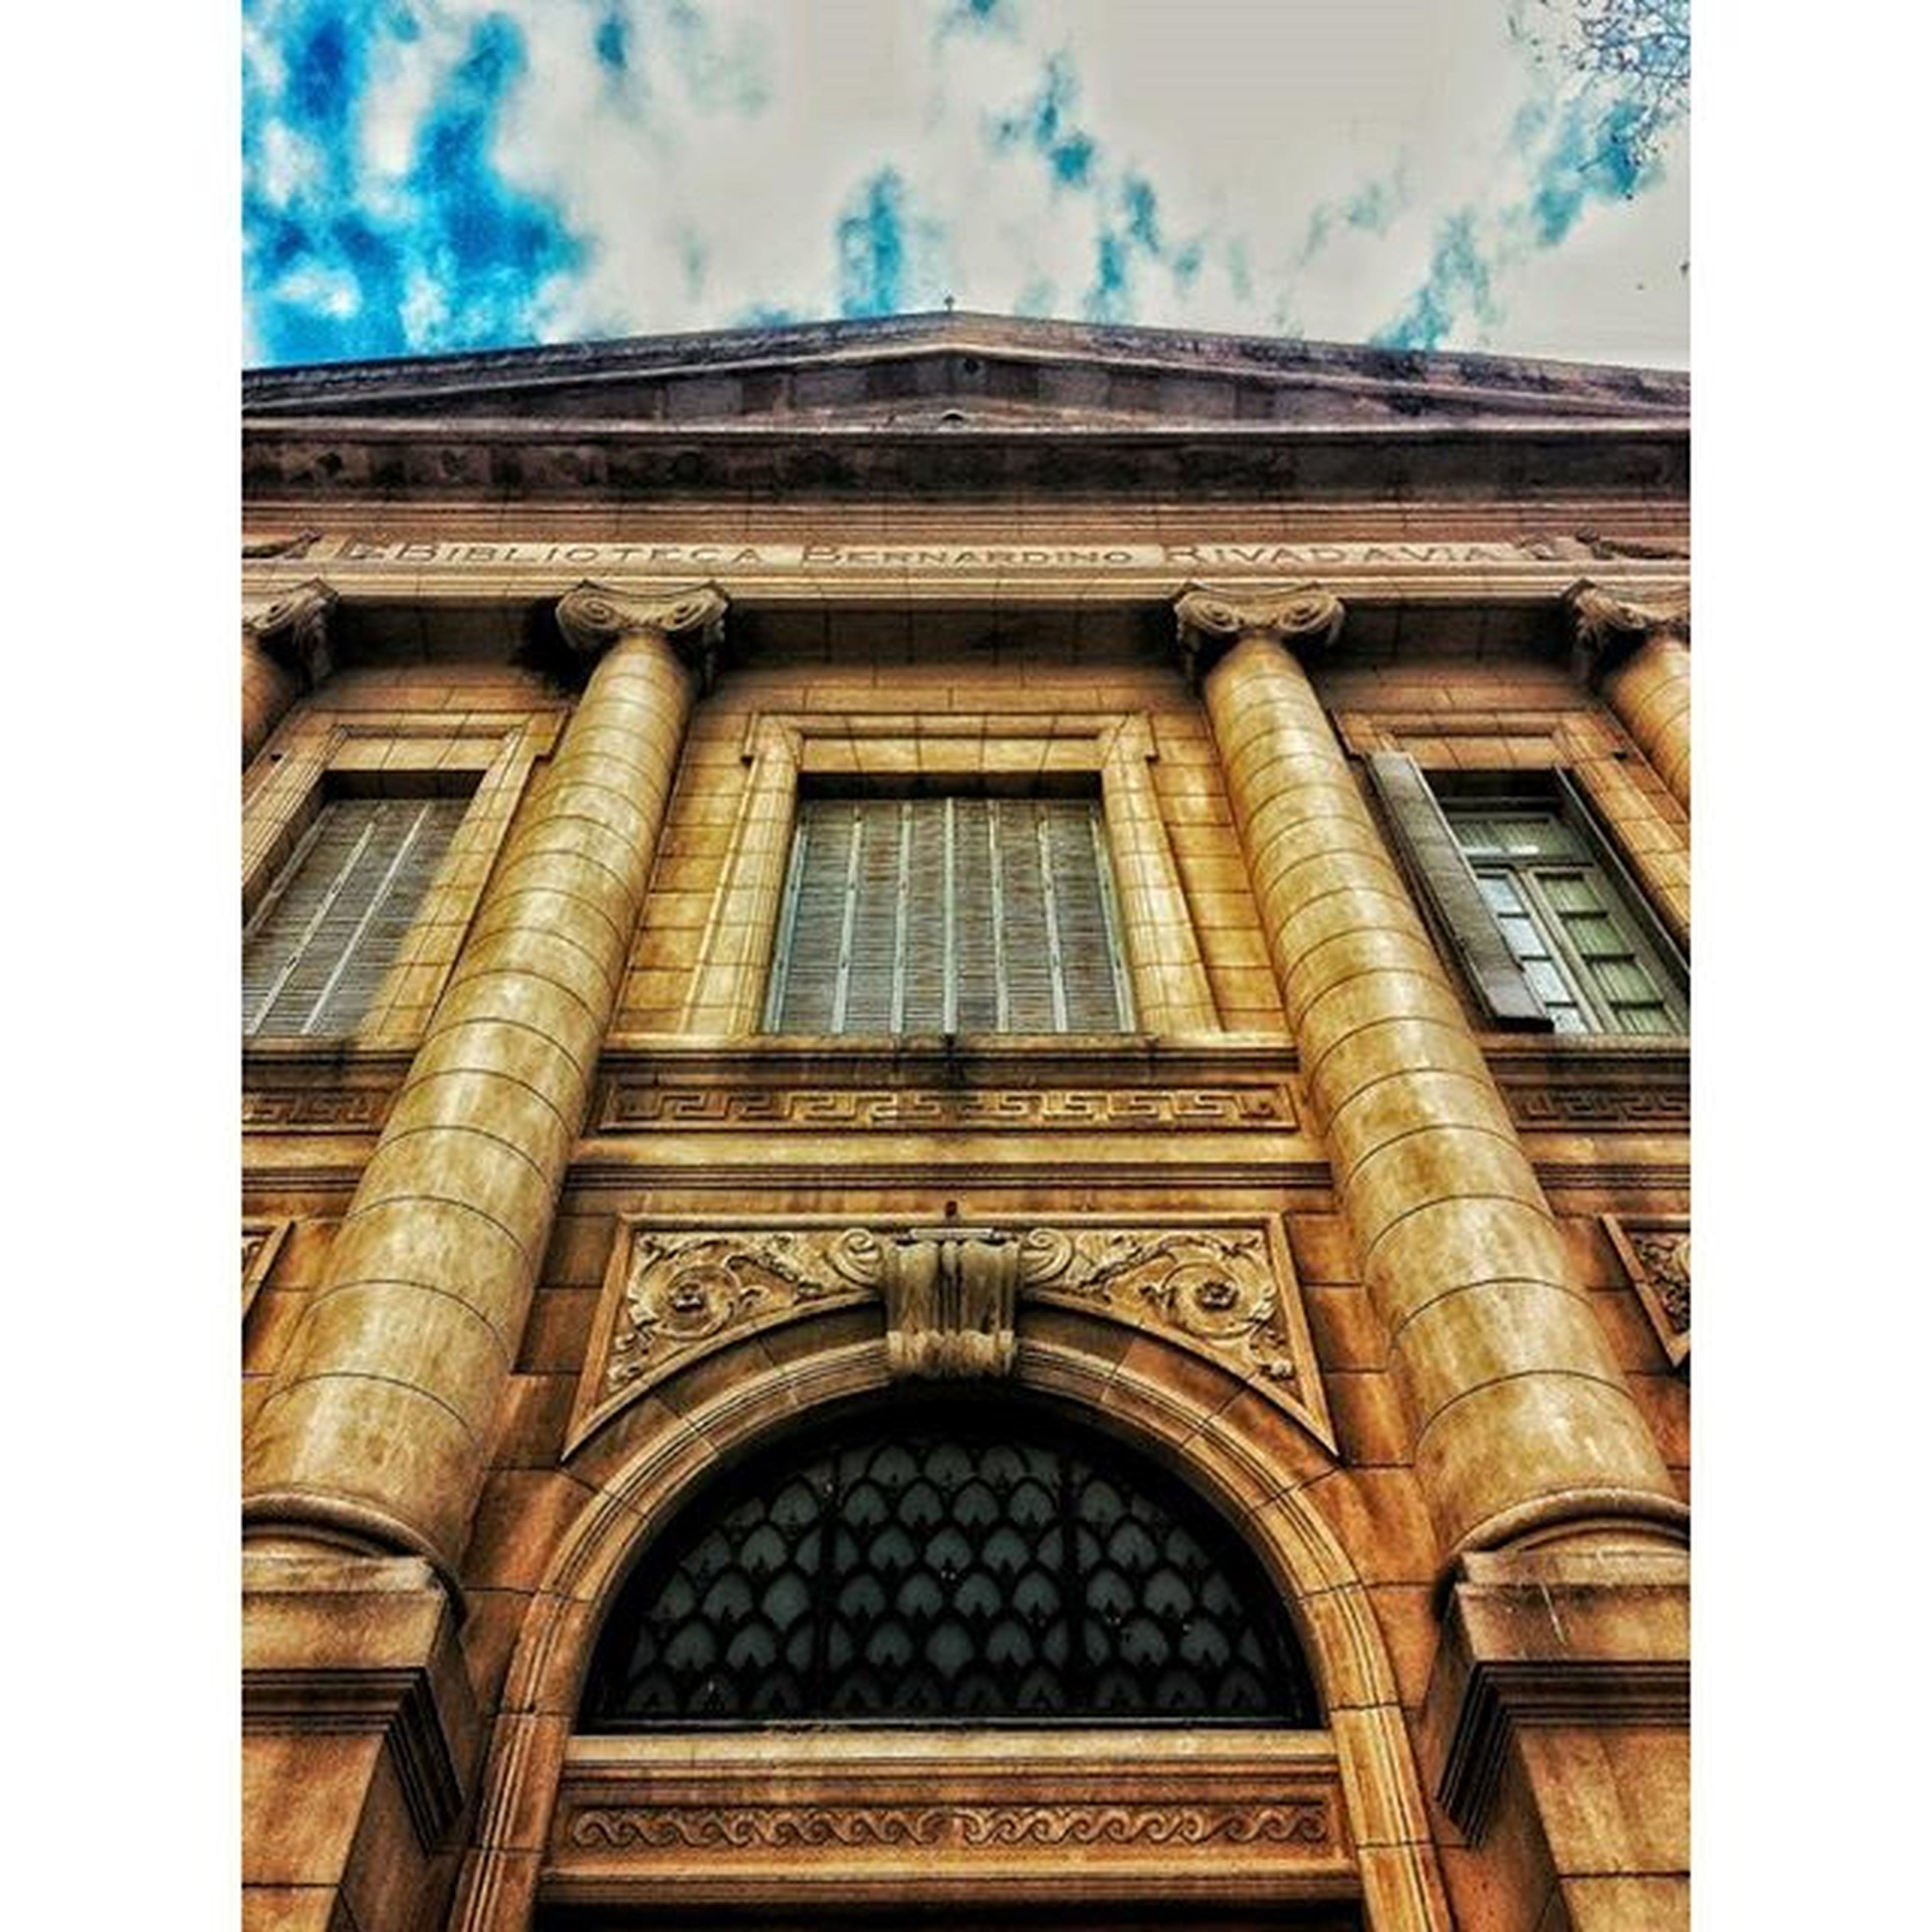 architecture, built structure, transfer print, building exterior, low angle view, auto post production filter, sky, architectural column, window, arch, history, building, facade, day, cloud - sky, column, outdoors, no people, cloud, city